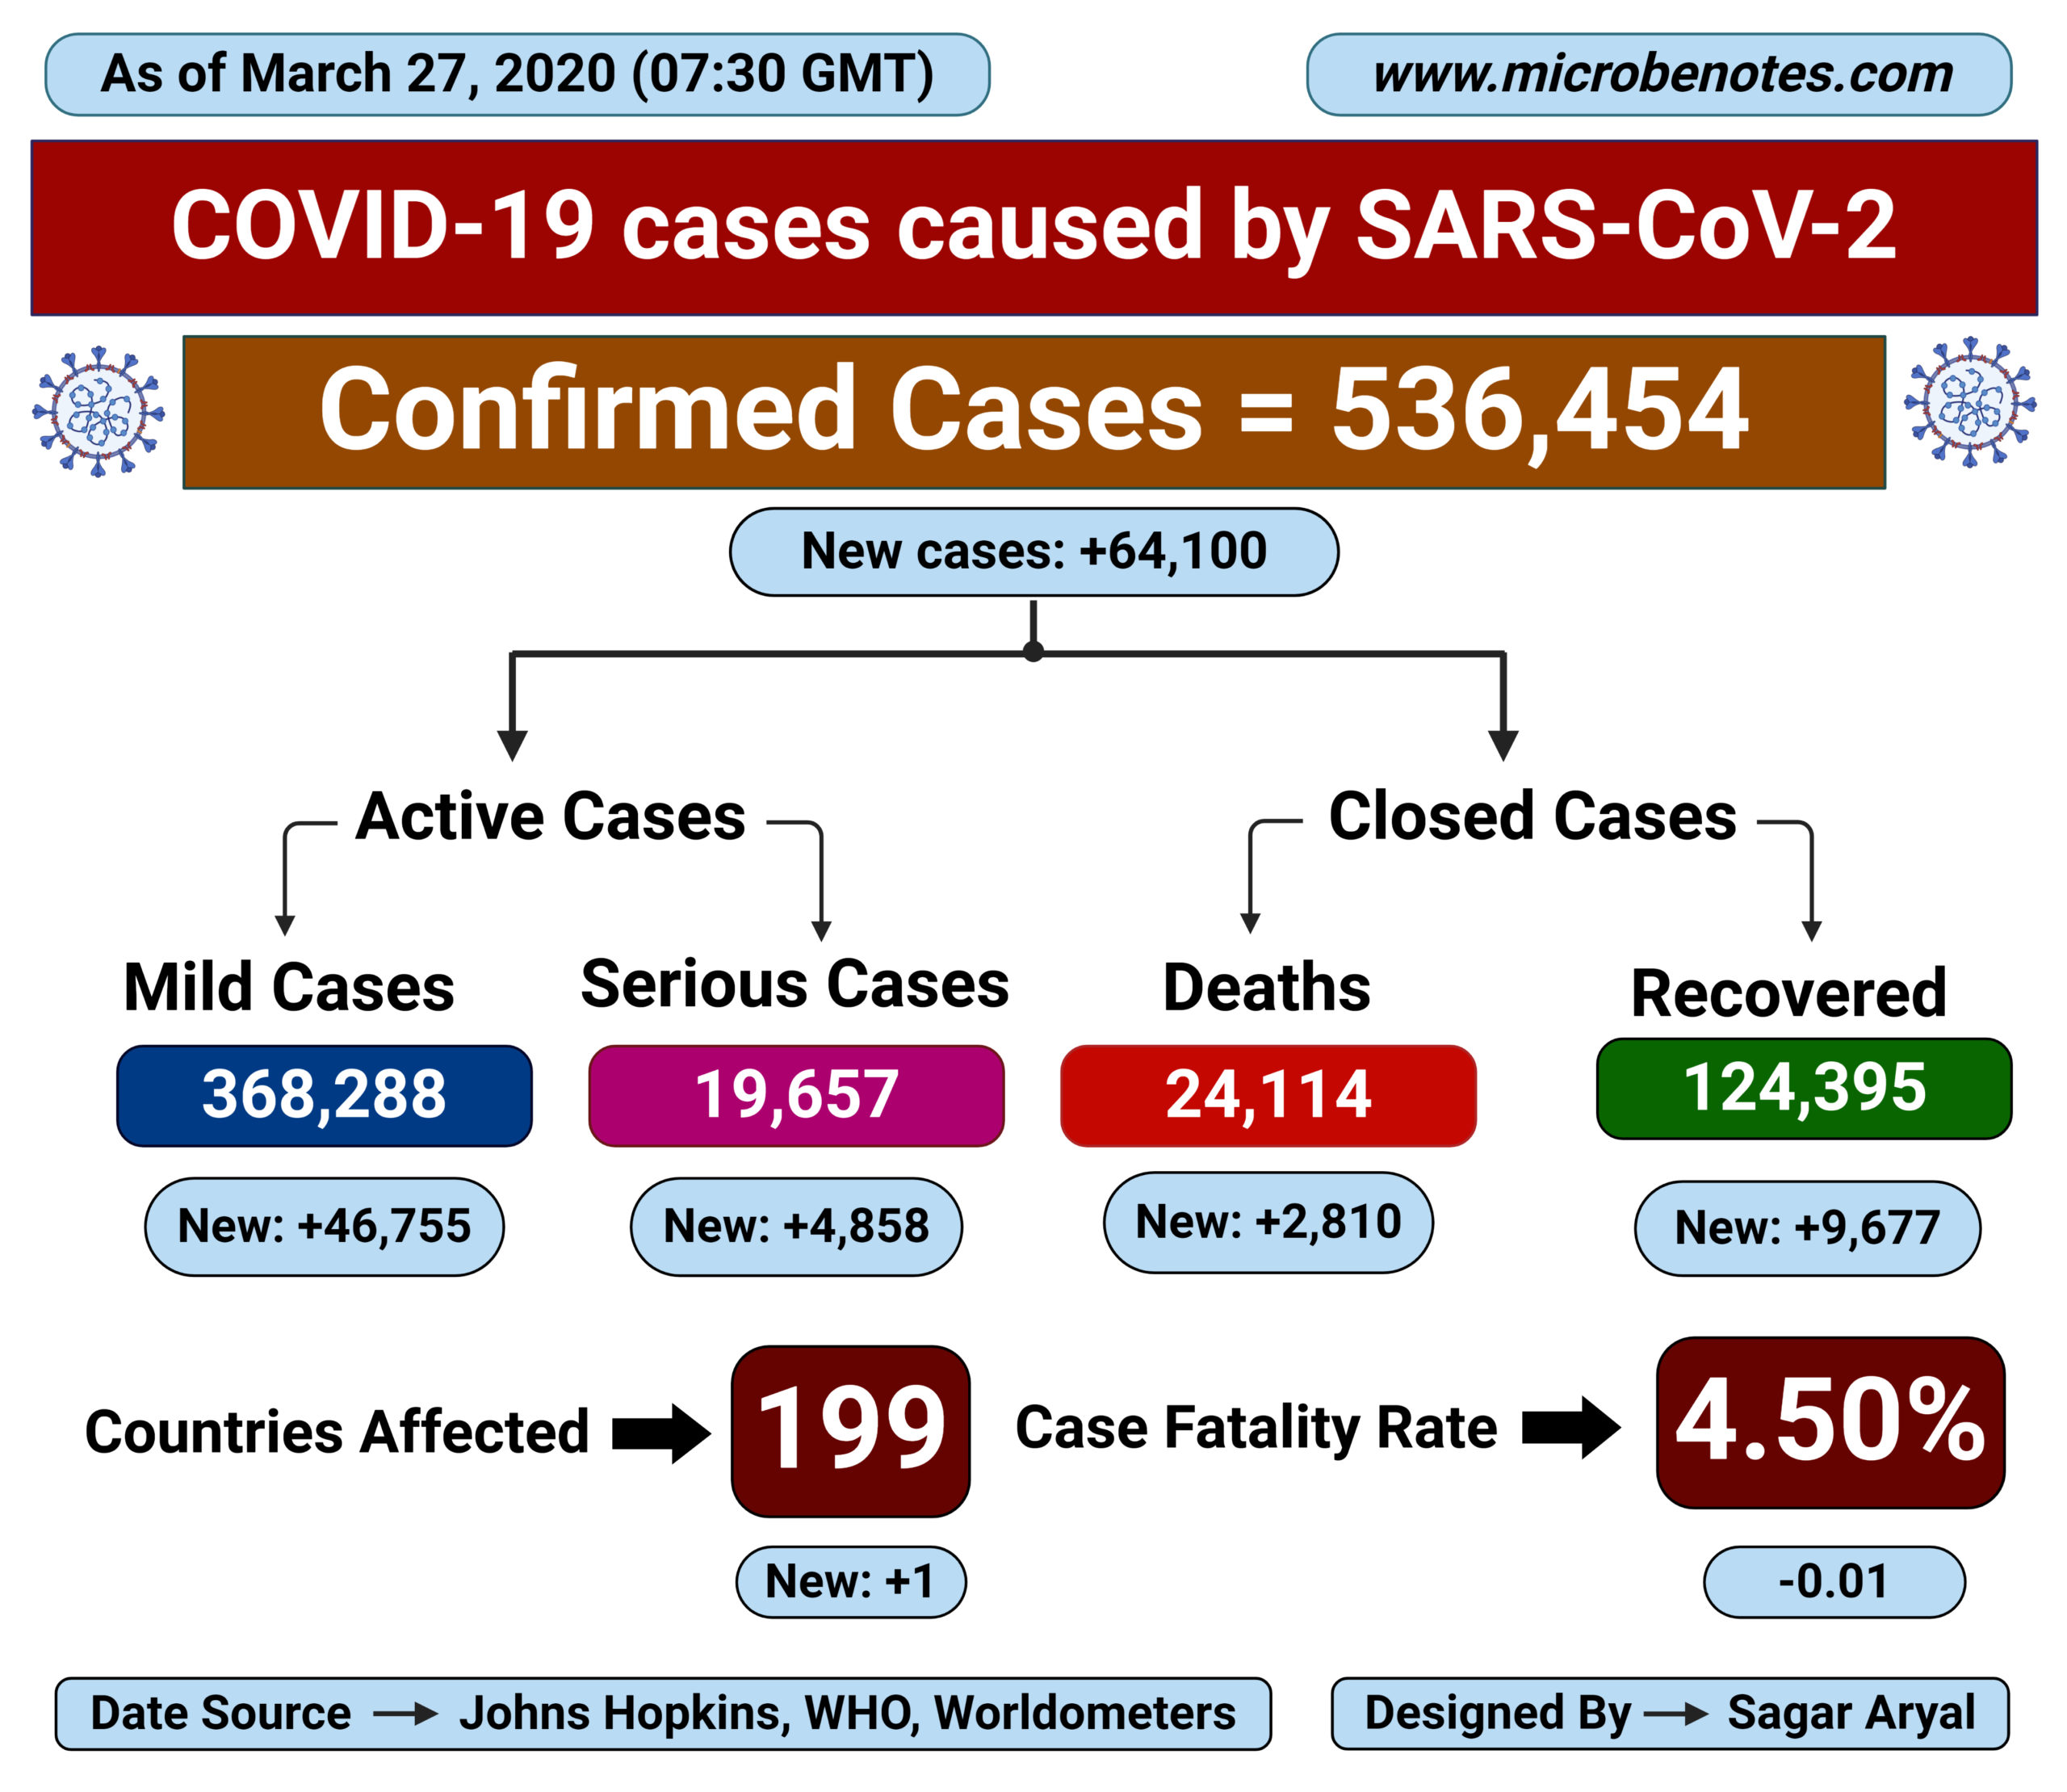 Epidemiology of COVID-19 caused by SARS-CoV-2 as of March 27, 2020